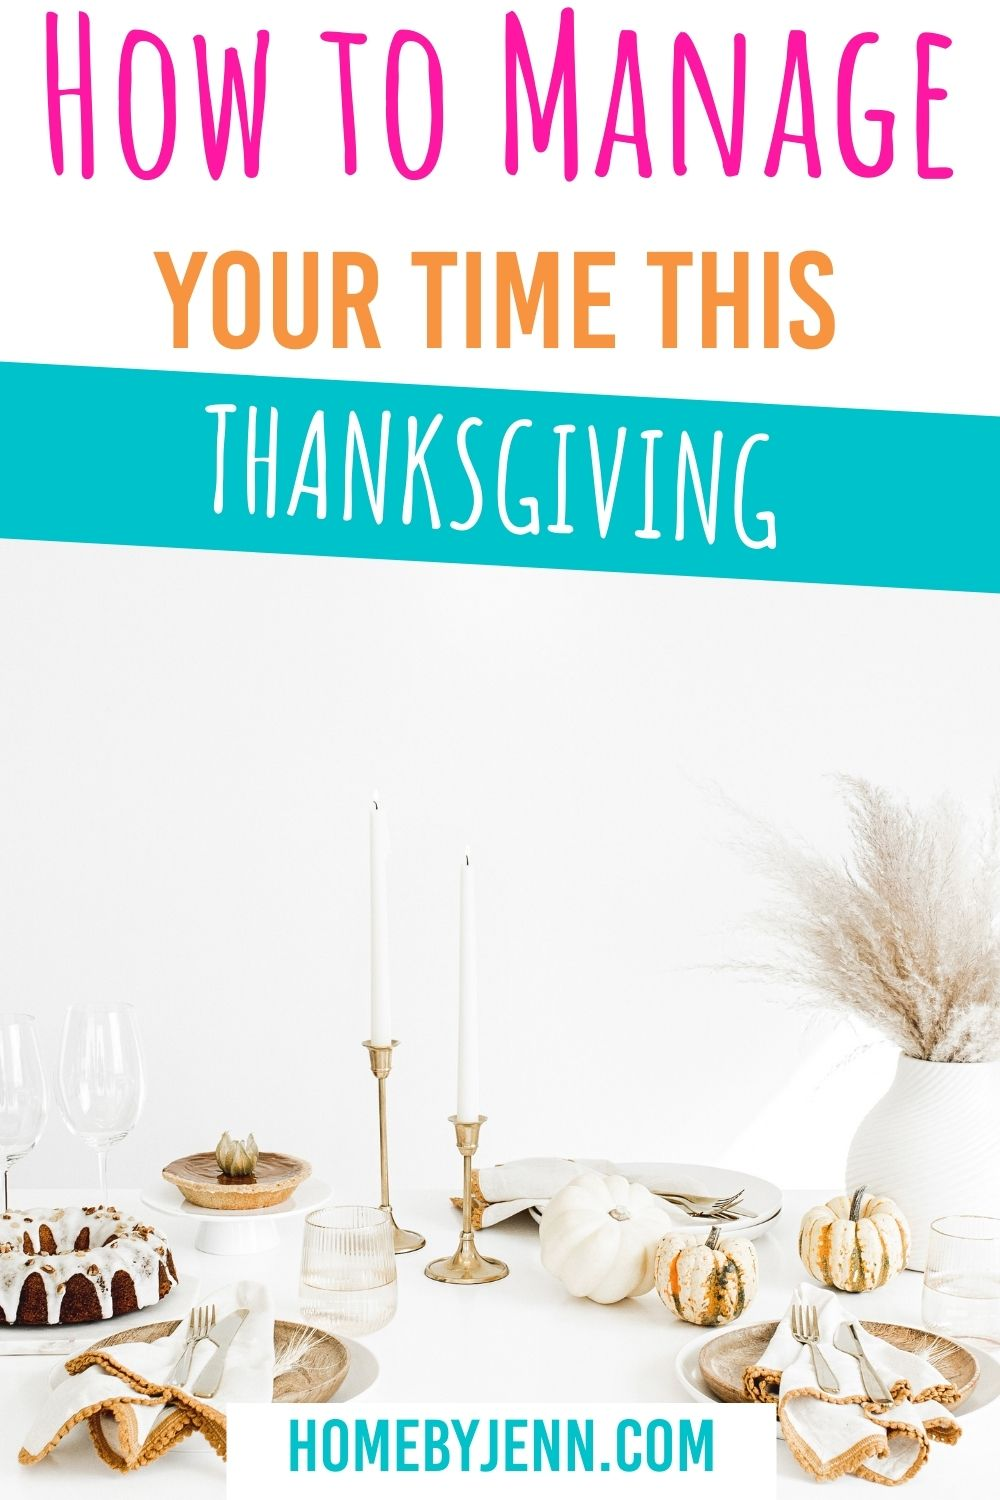 Thanksgiving is a stressful time of the year. With the out of town guests, prepare a big feast, and getting ready for the holidays, it's important to manage your time. In this post, I'm going to show you how to manage time this Thanksgiving. | #Thanksgiving #GetDone #Tips #organization #timemanagement #howto via @homebyjenn